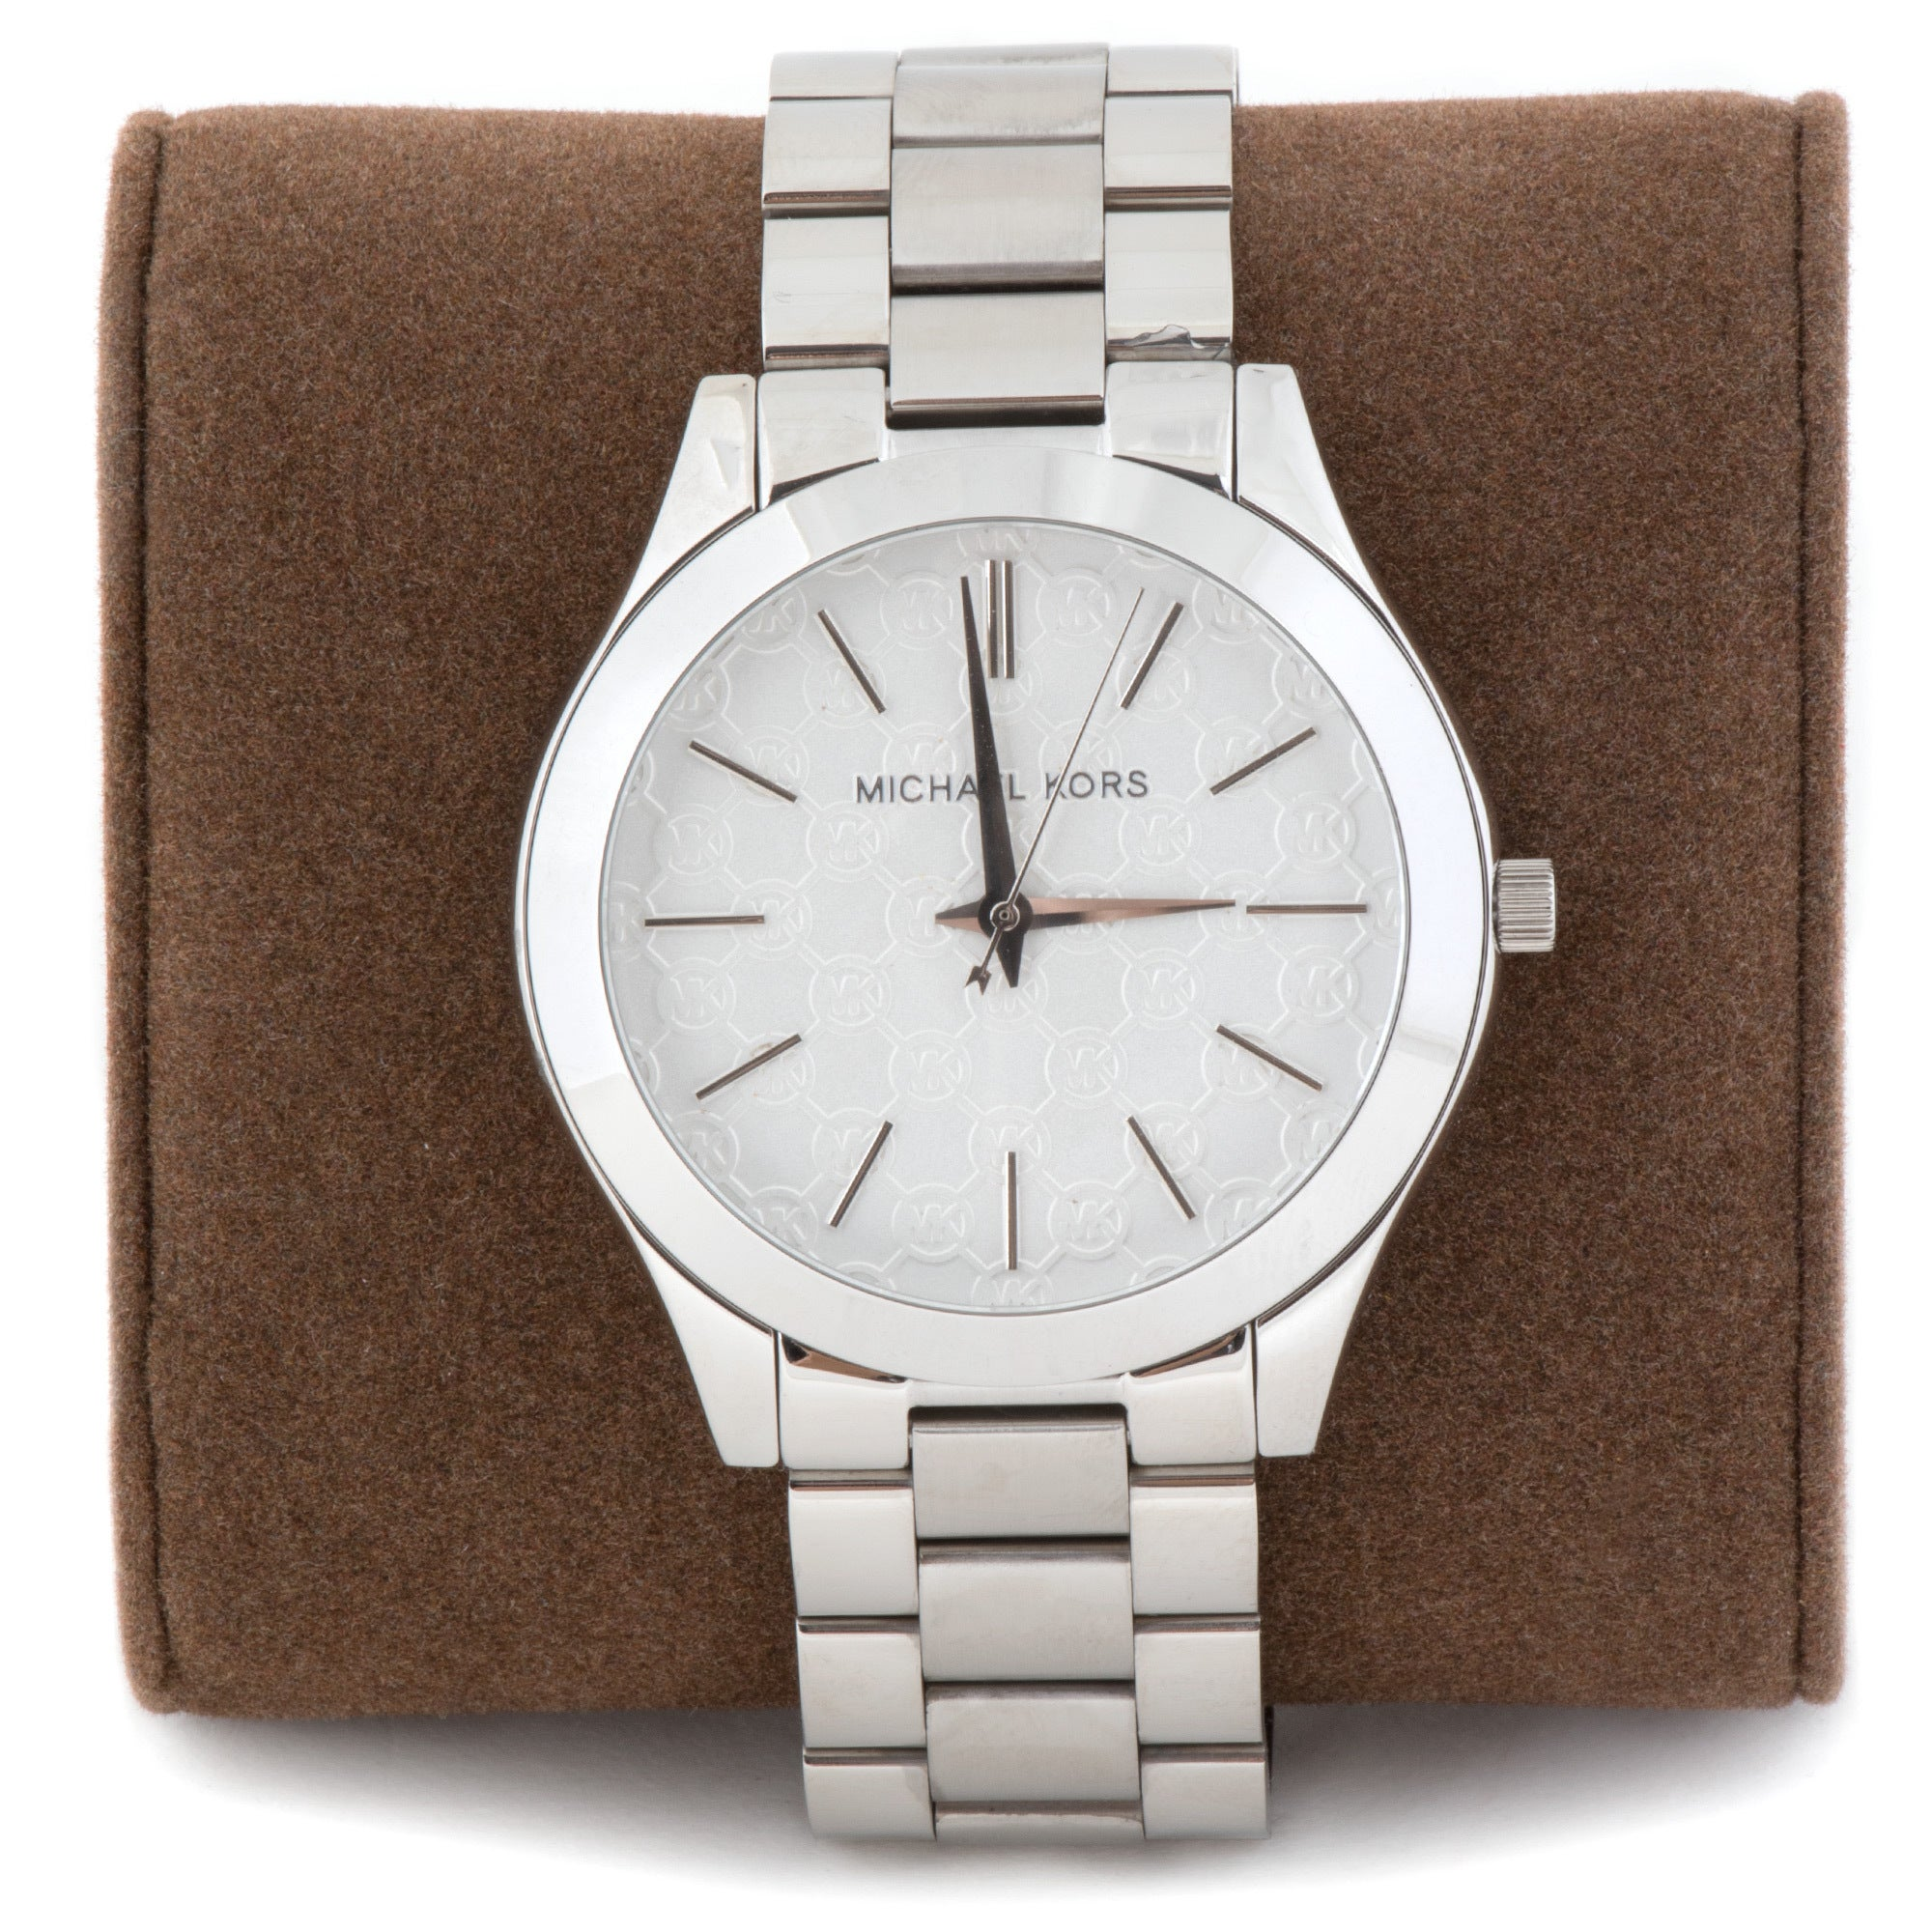 cb32506cd70f Shop Michael Kors Women s  Slim Runway  MK Logo Stainless Steel Watch -  Free Shipping Today - Overstock - 12834898